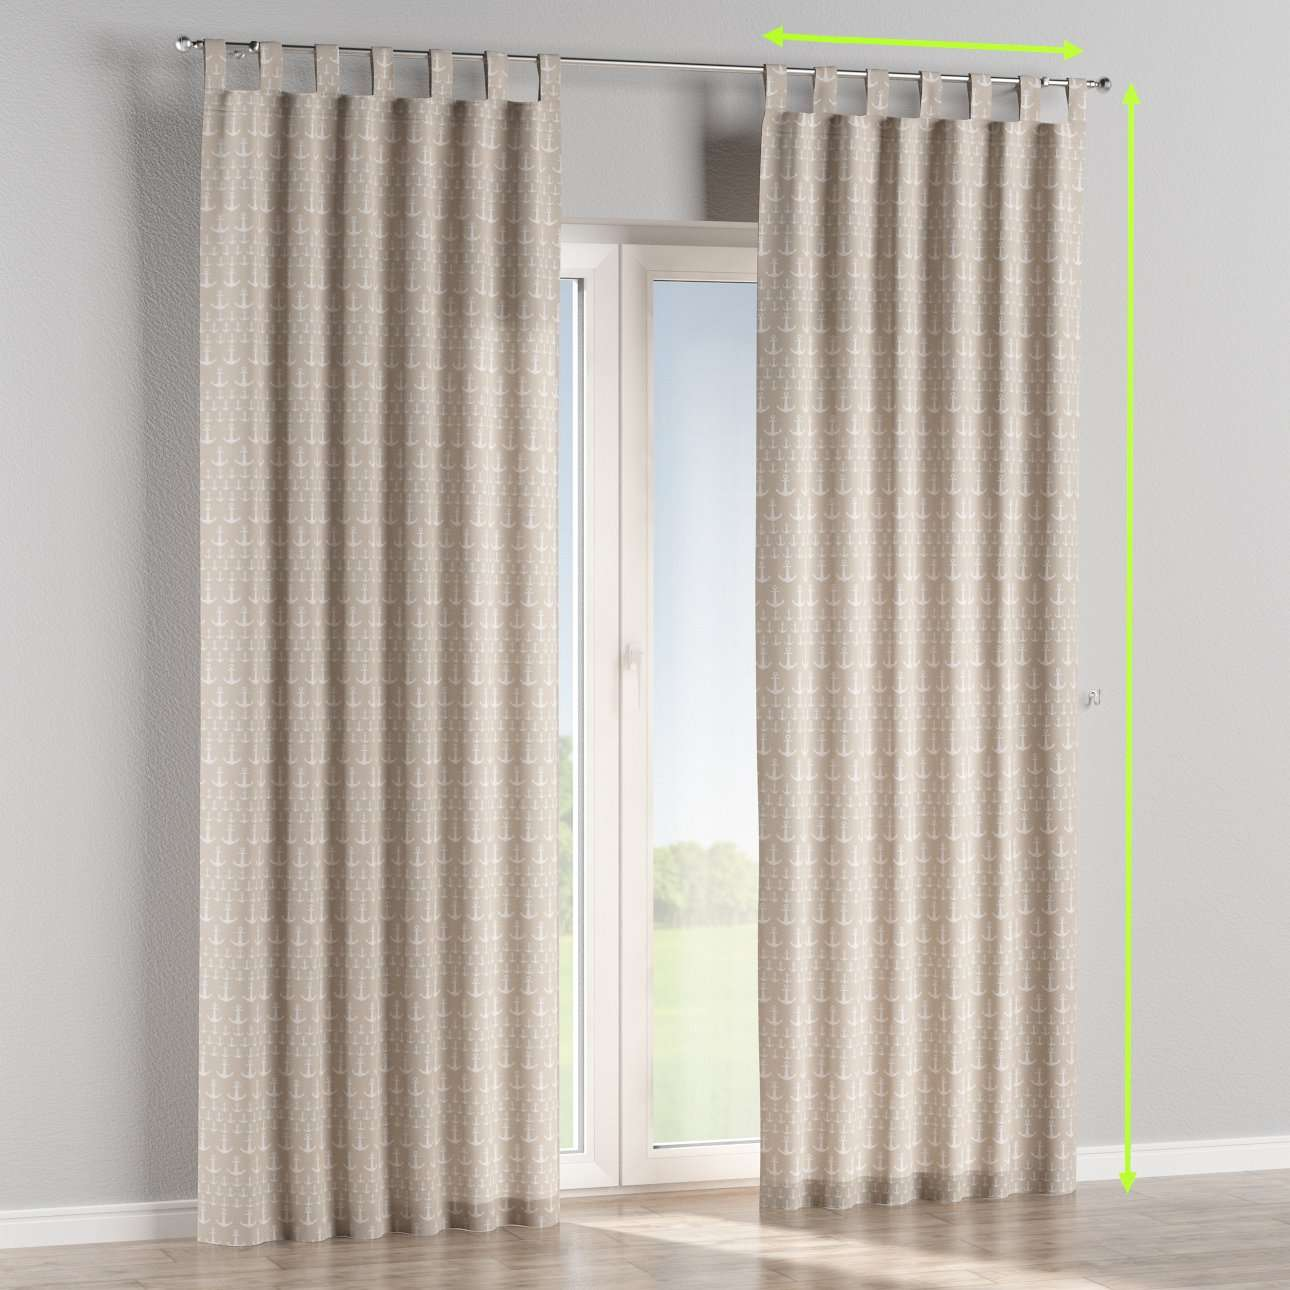 Tab top lined curtains in collection Marina, fabric: 140-63